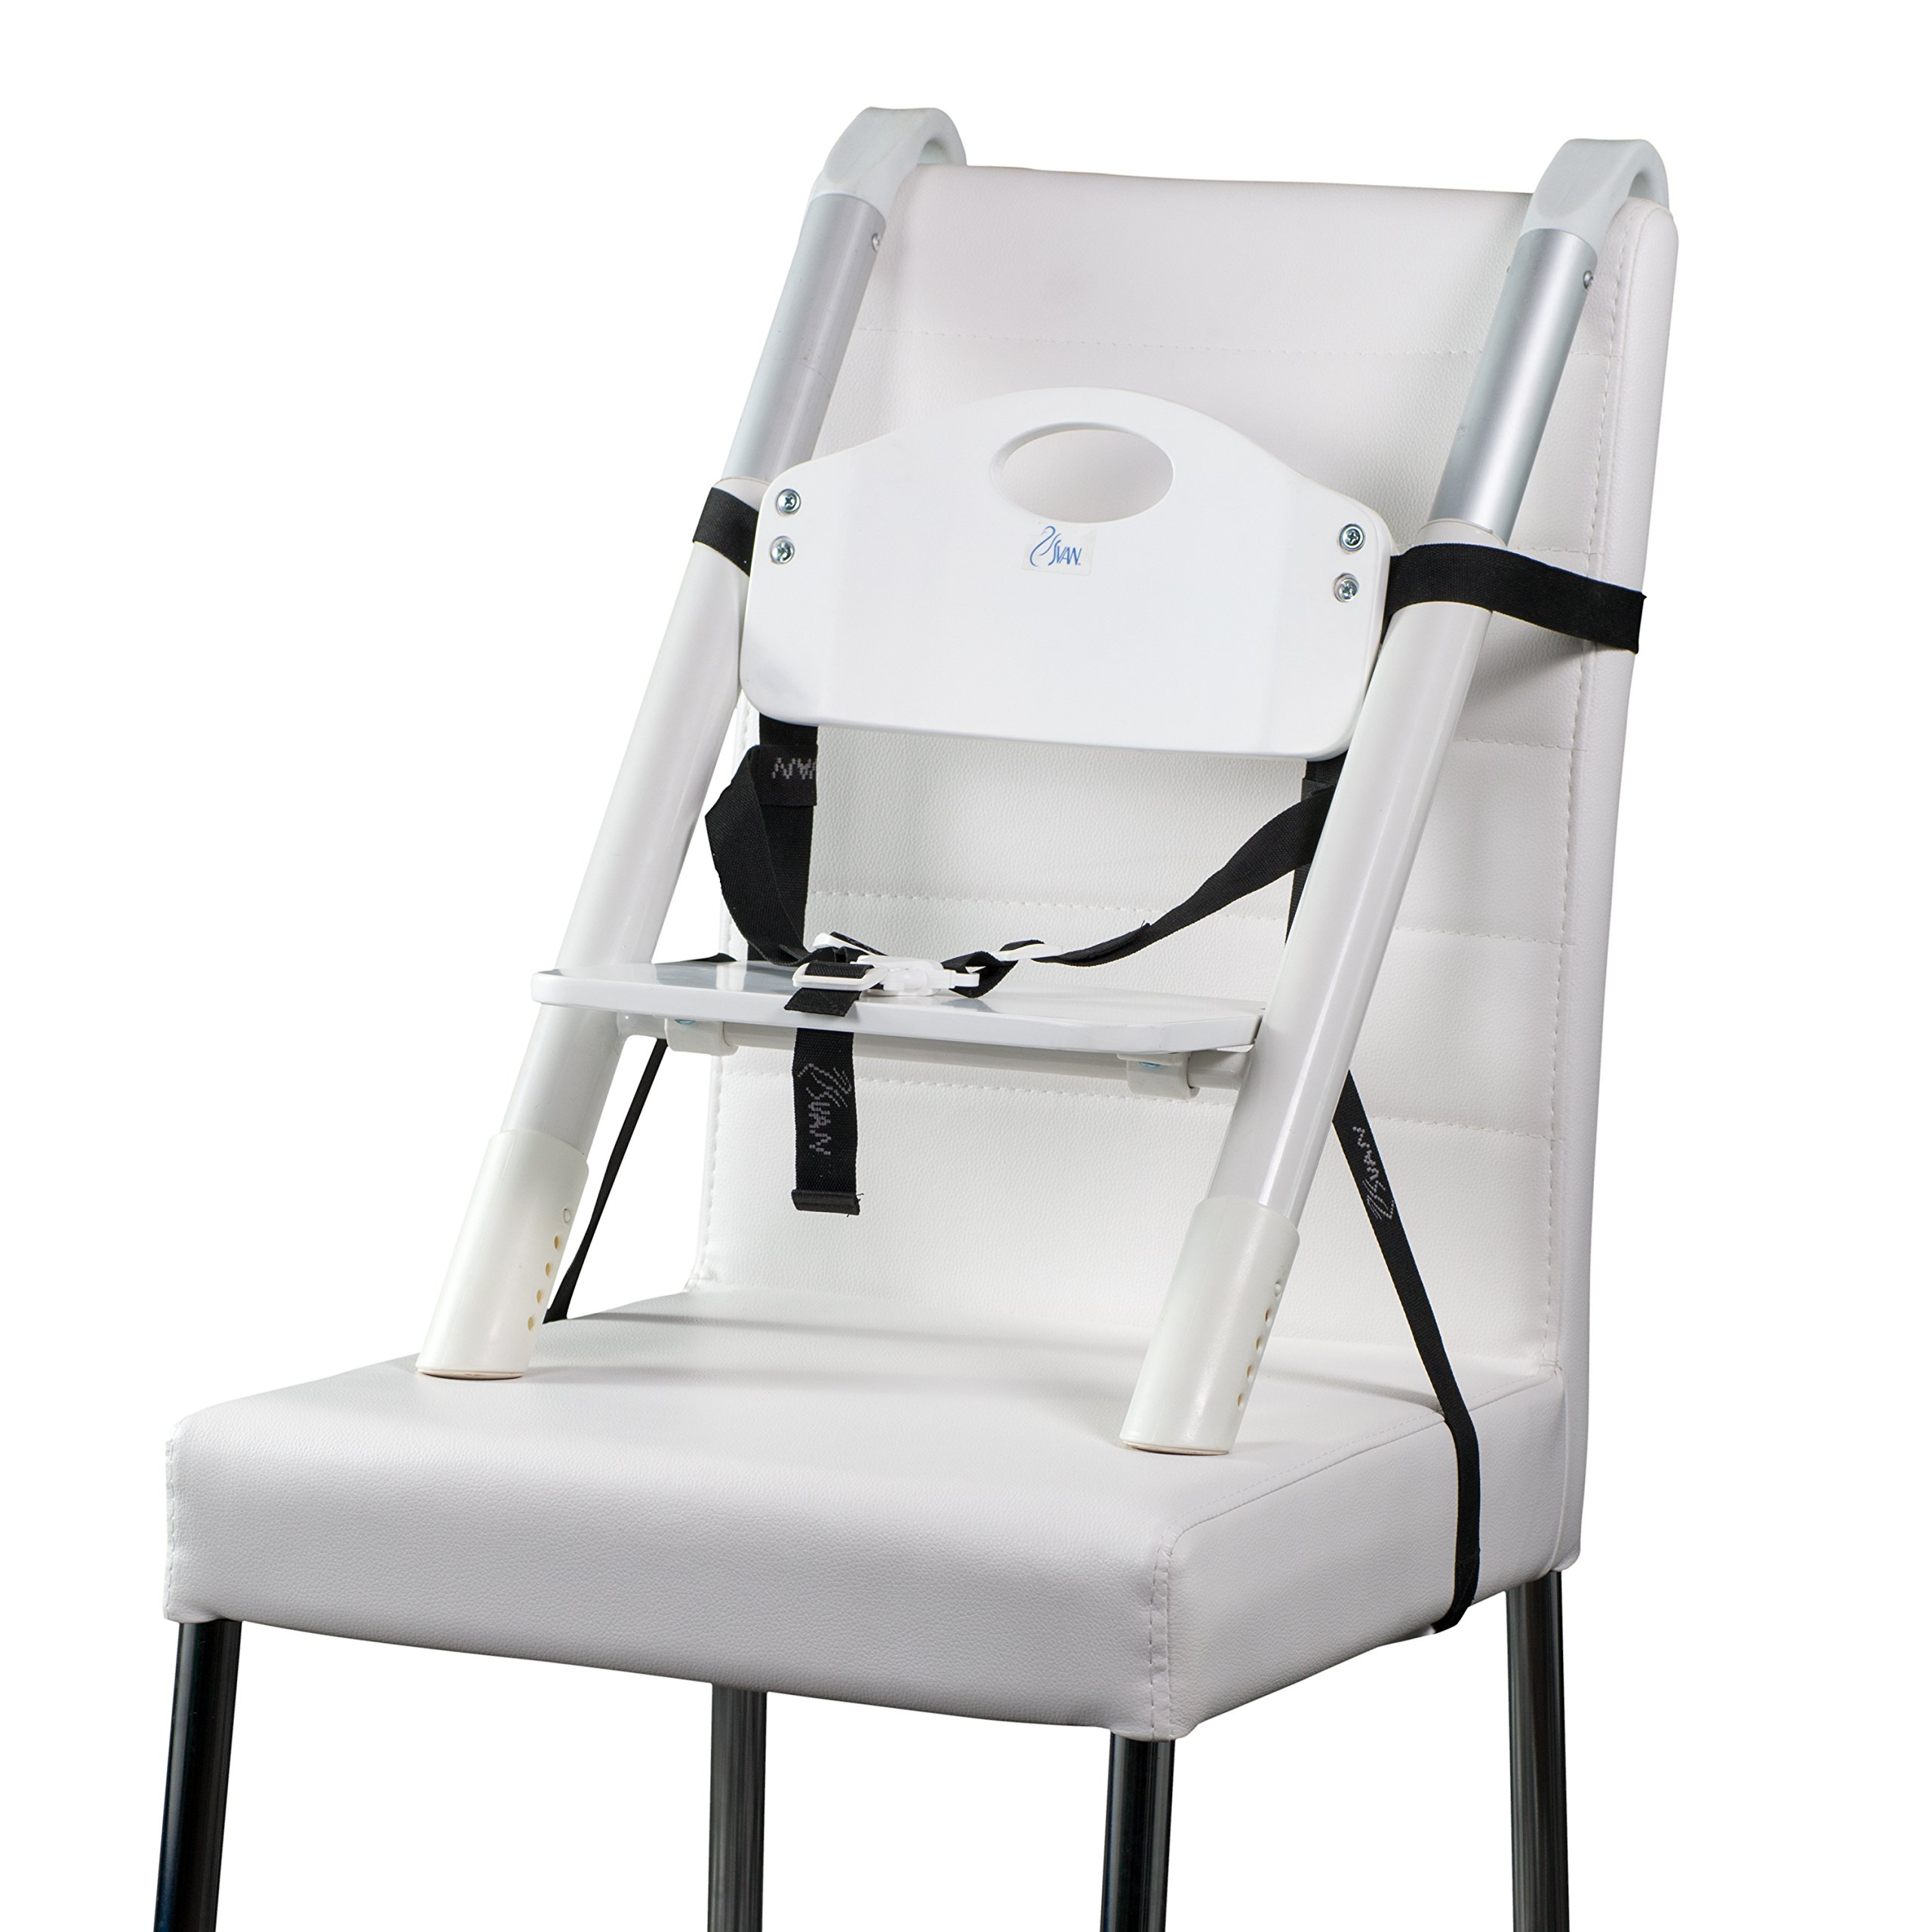 Booster Seat - Svan Lyft High Chair Booster Seat - Adjusts Easily to Most Chairs - White (18 Mo to 5 Yrs) by Svan